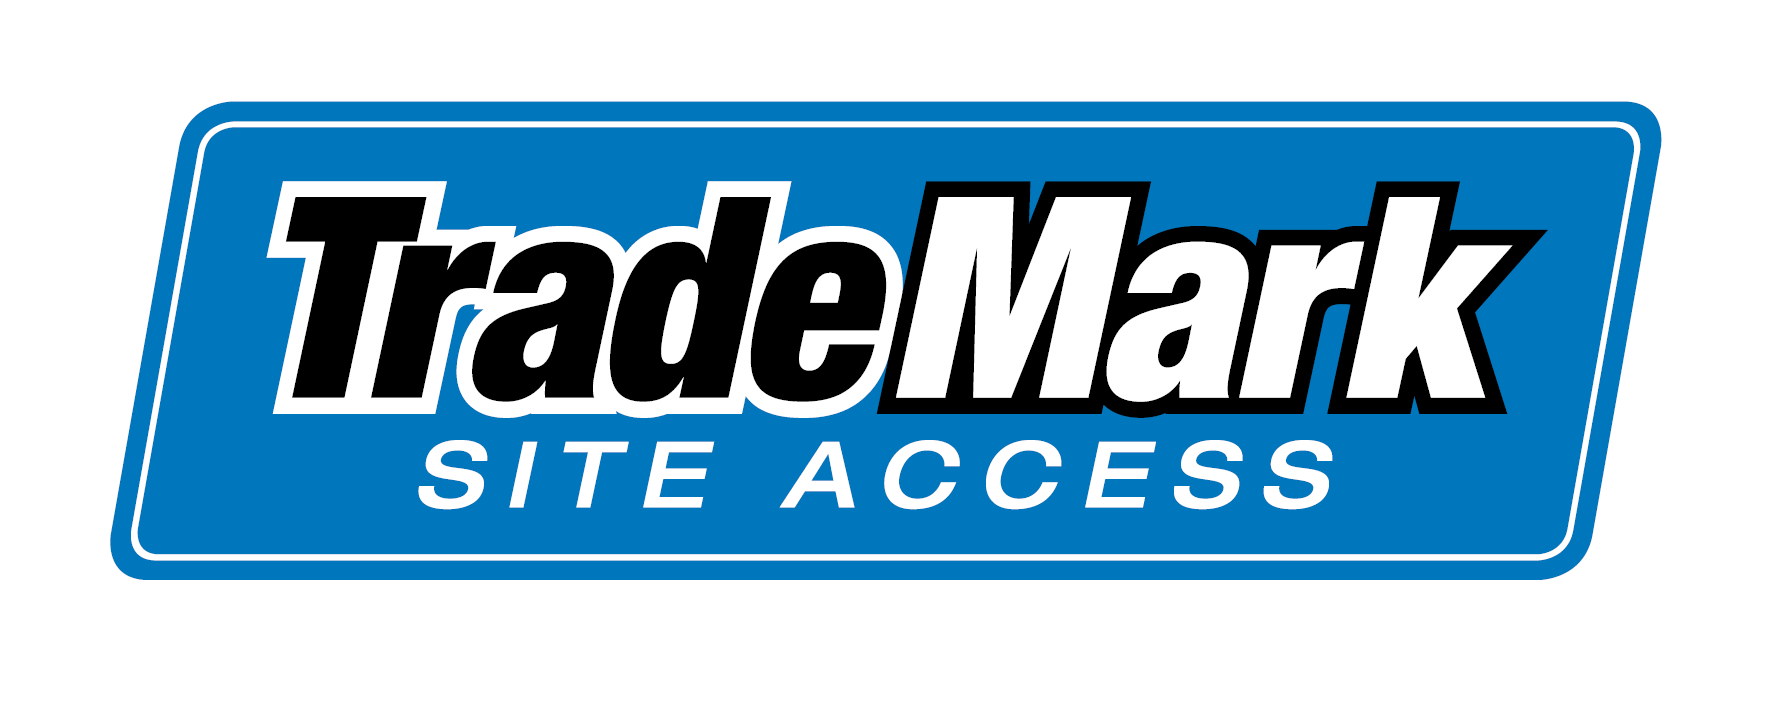 Trademark Site Access